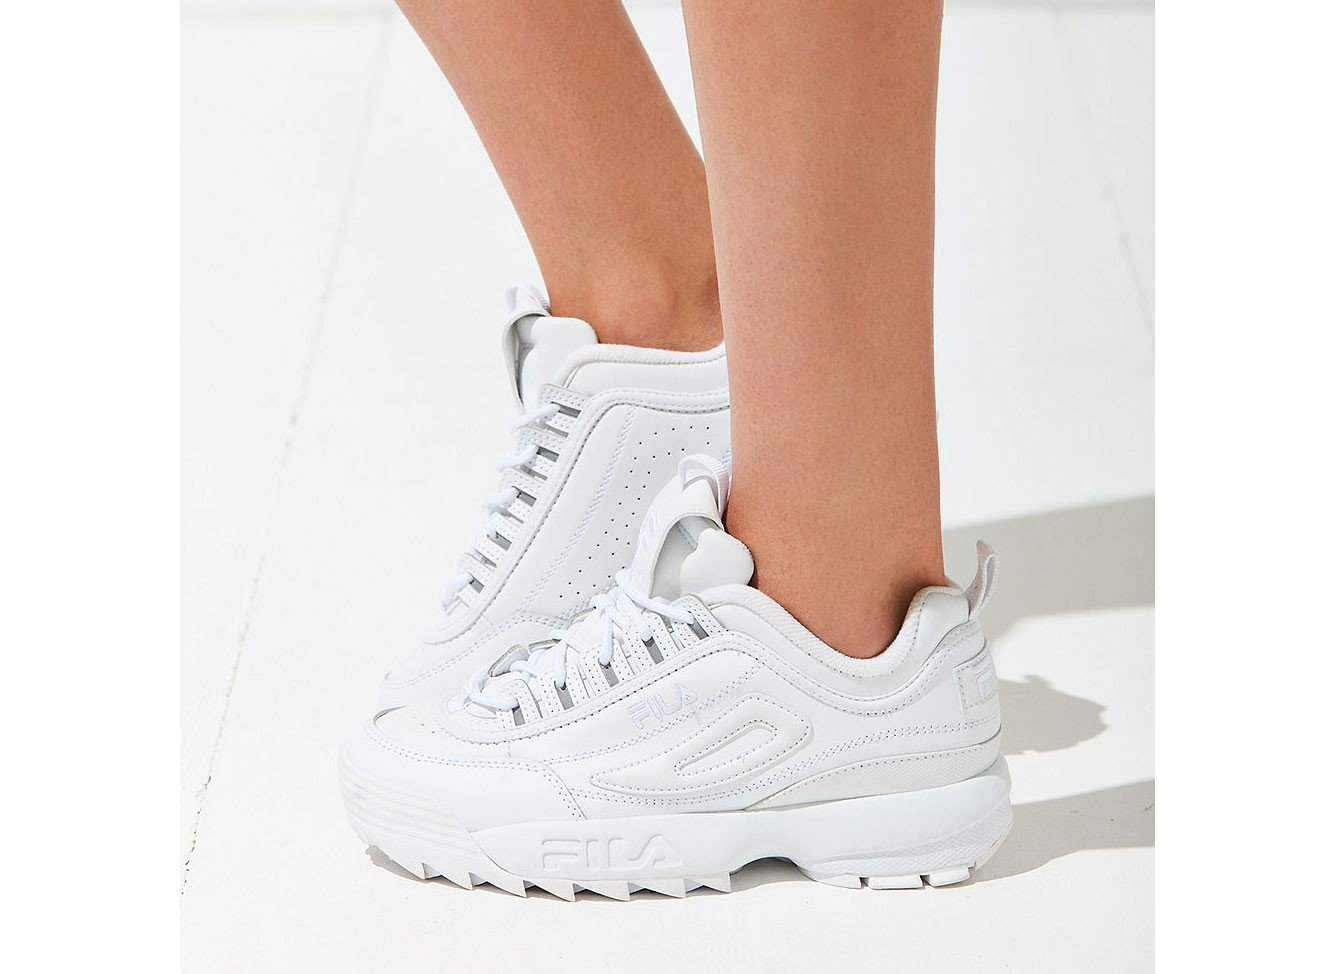 Celebs Style + Design Travel Shop footwear person shoe white sneakers clothing walking shoe sportswear outdoor shoe human leg product design product feet